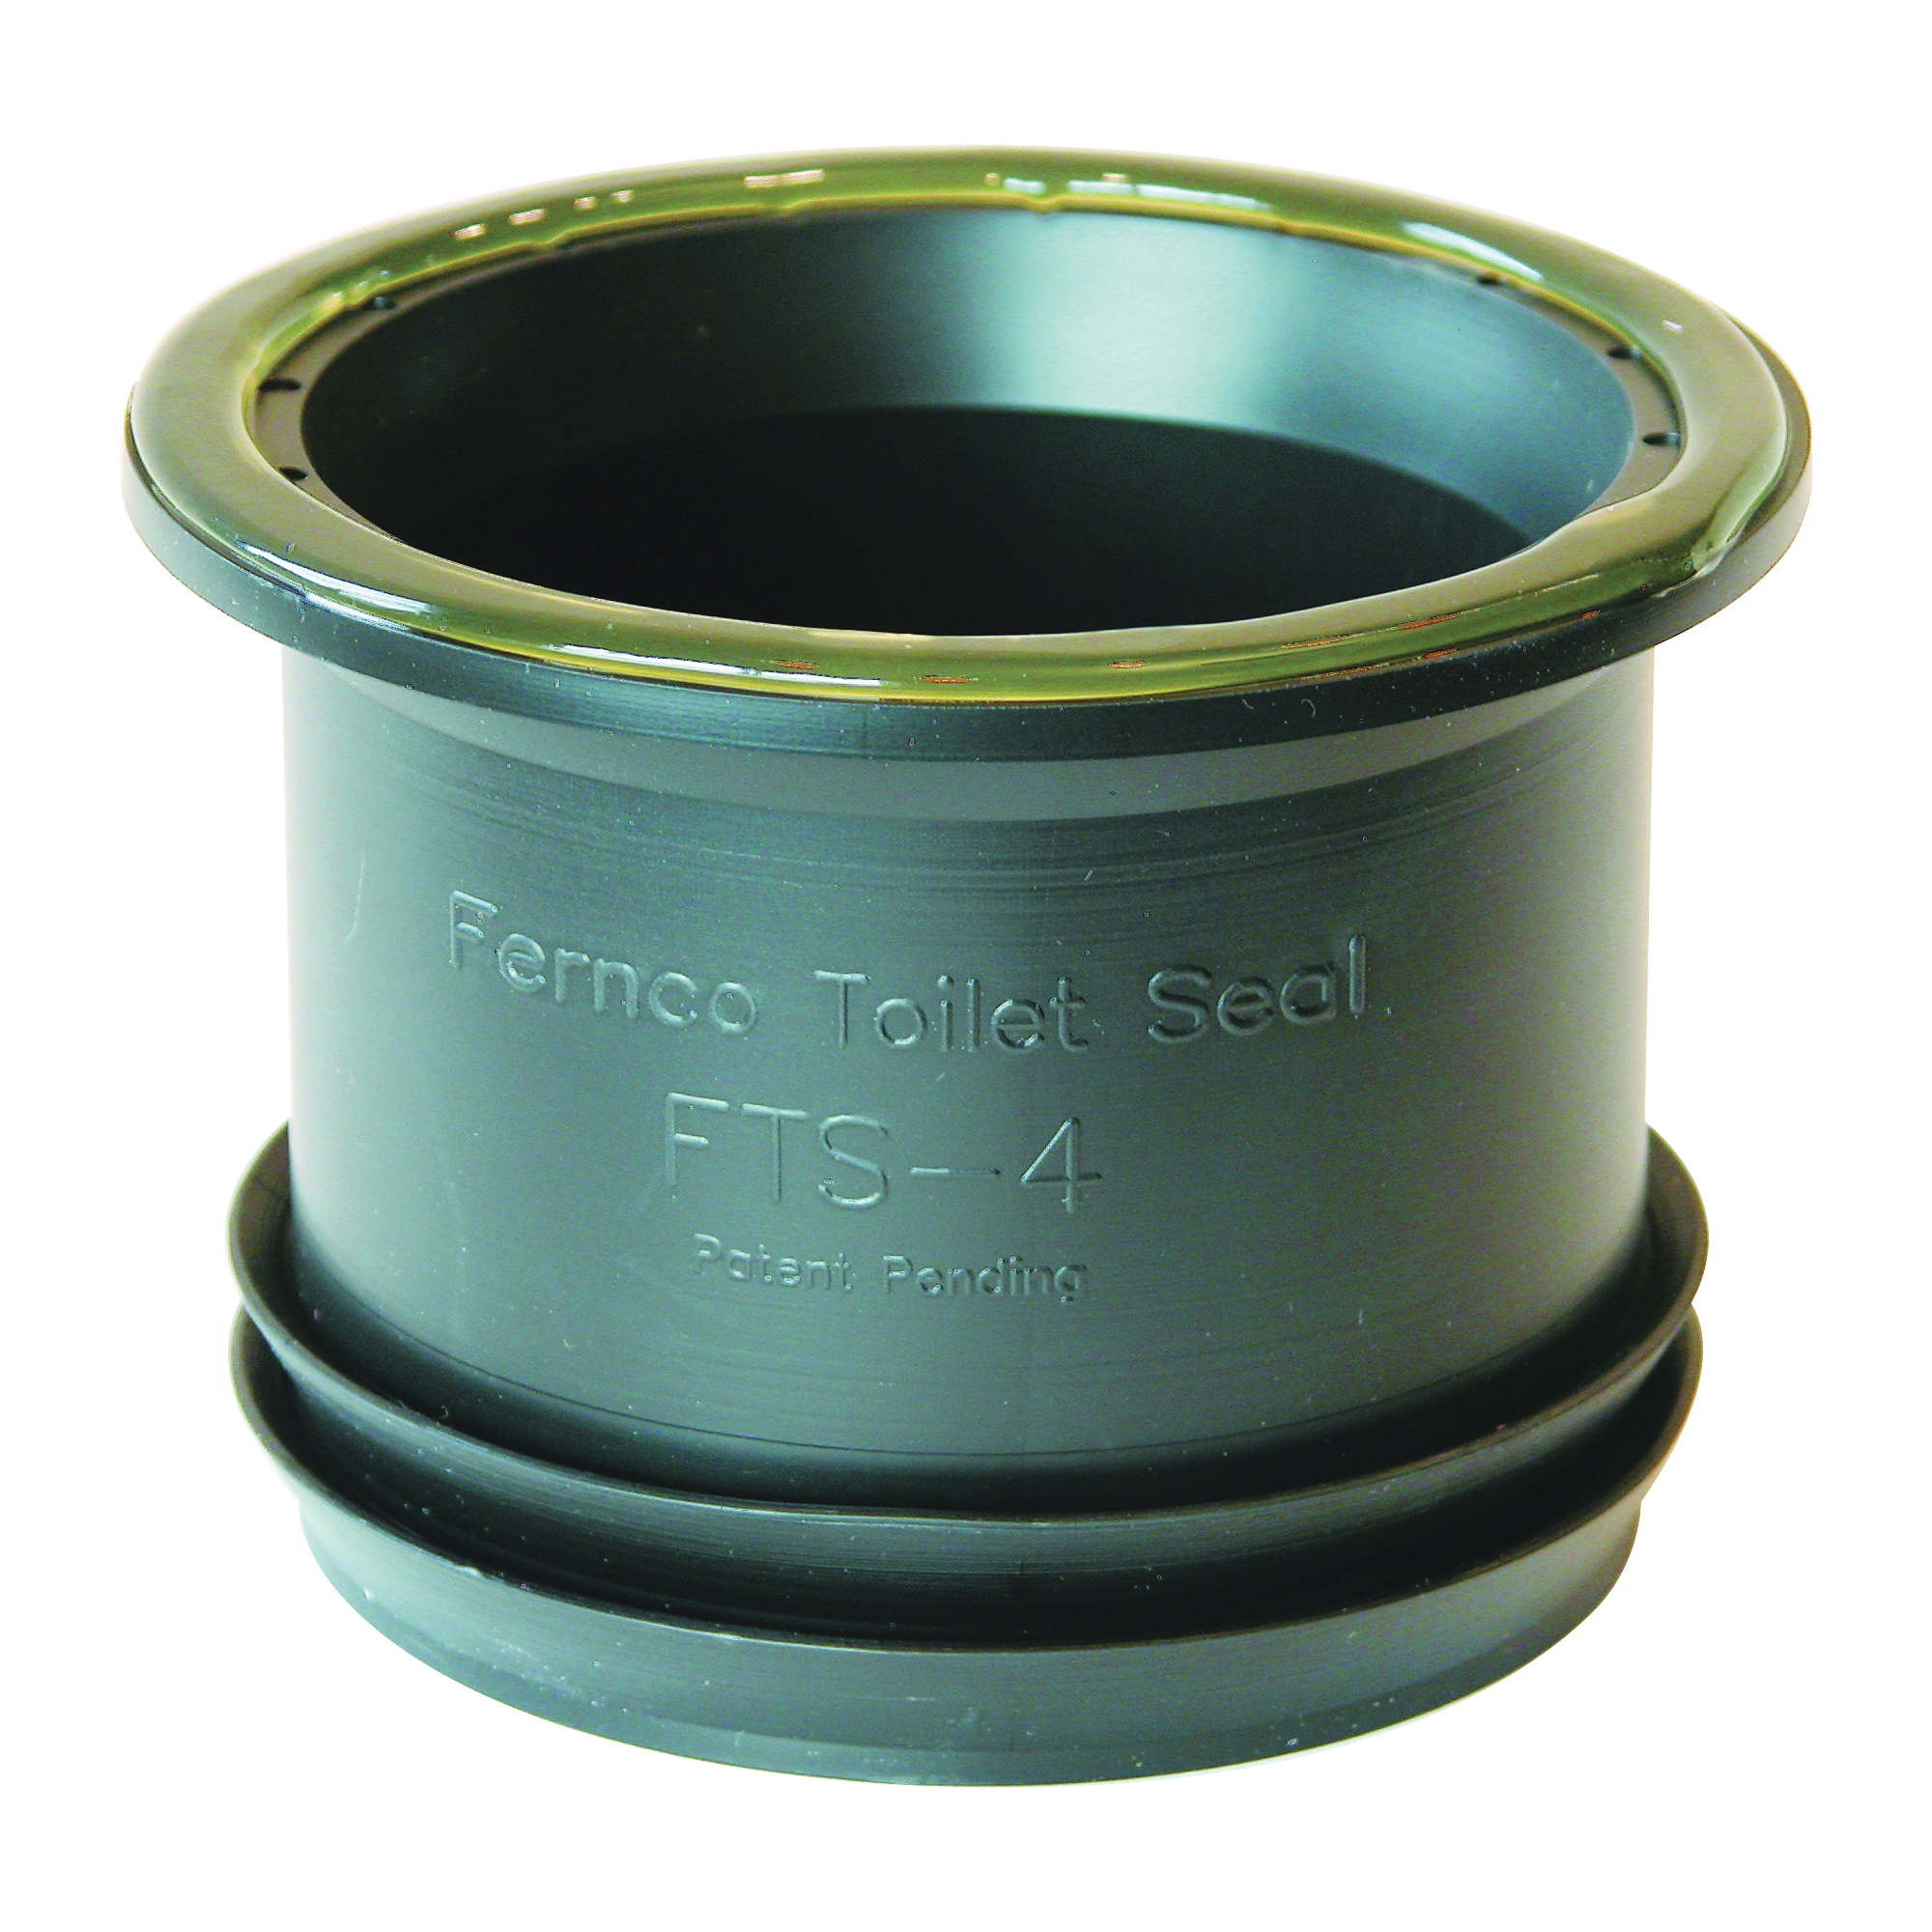 Picture of FERNCO FTS-4 Wax Free Toilet Seal 4 in, Elastomeric PVC, Black, For: 4 in Drain Pipes and Wall or Floor-Mount Toilets